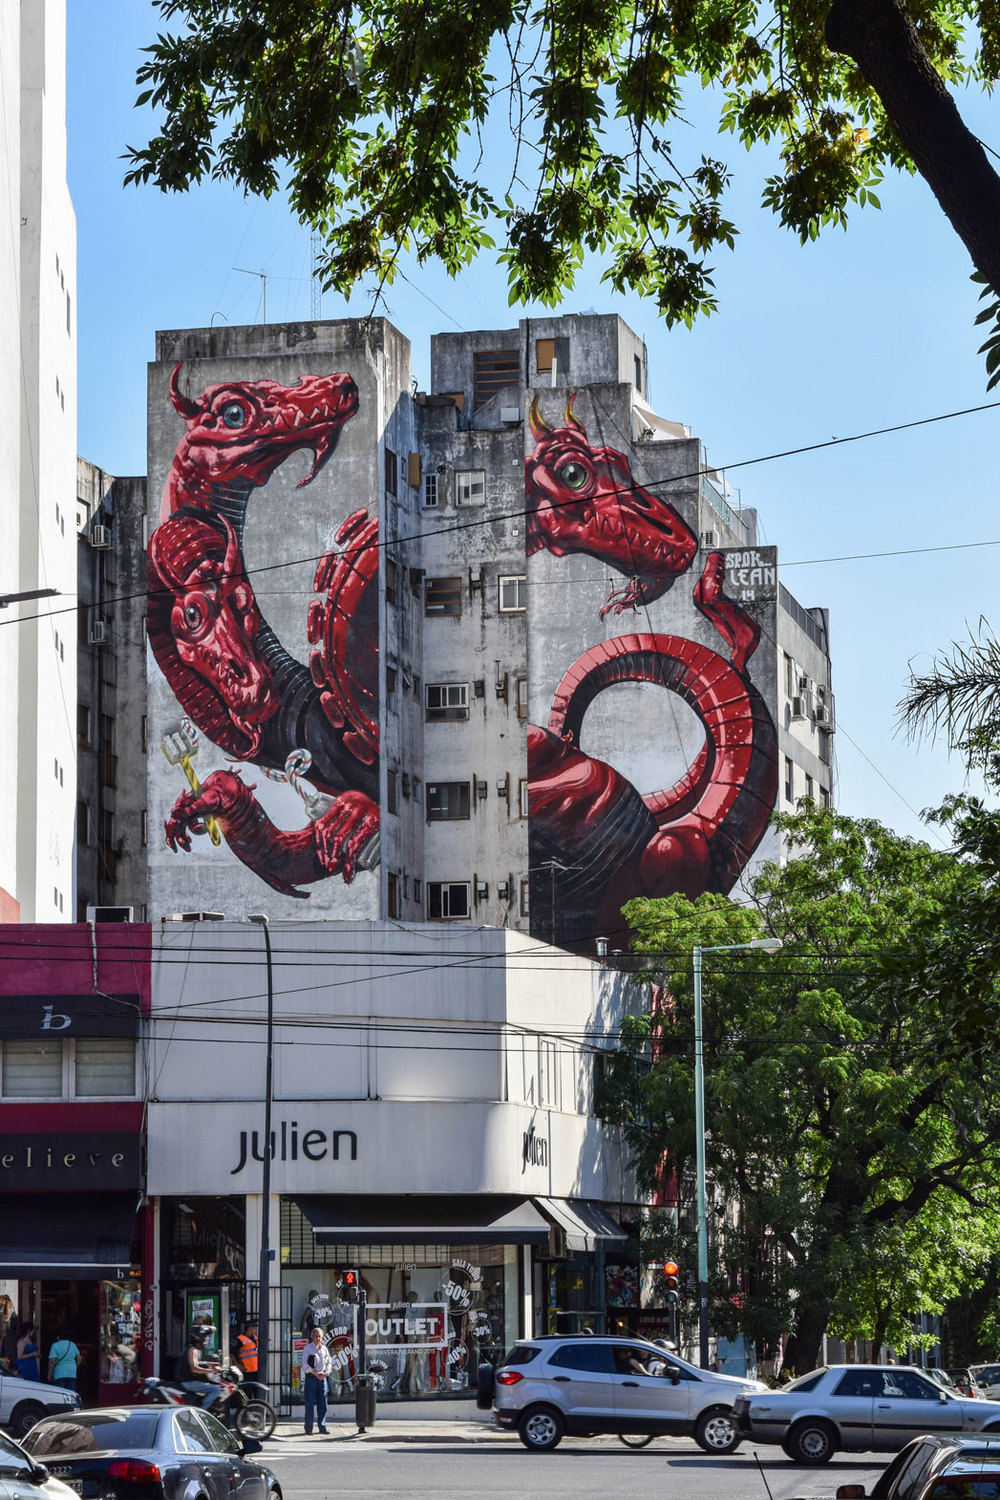 The Dragon - Buenos Aires